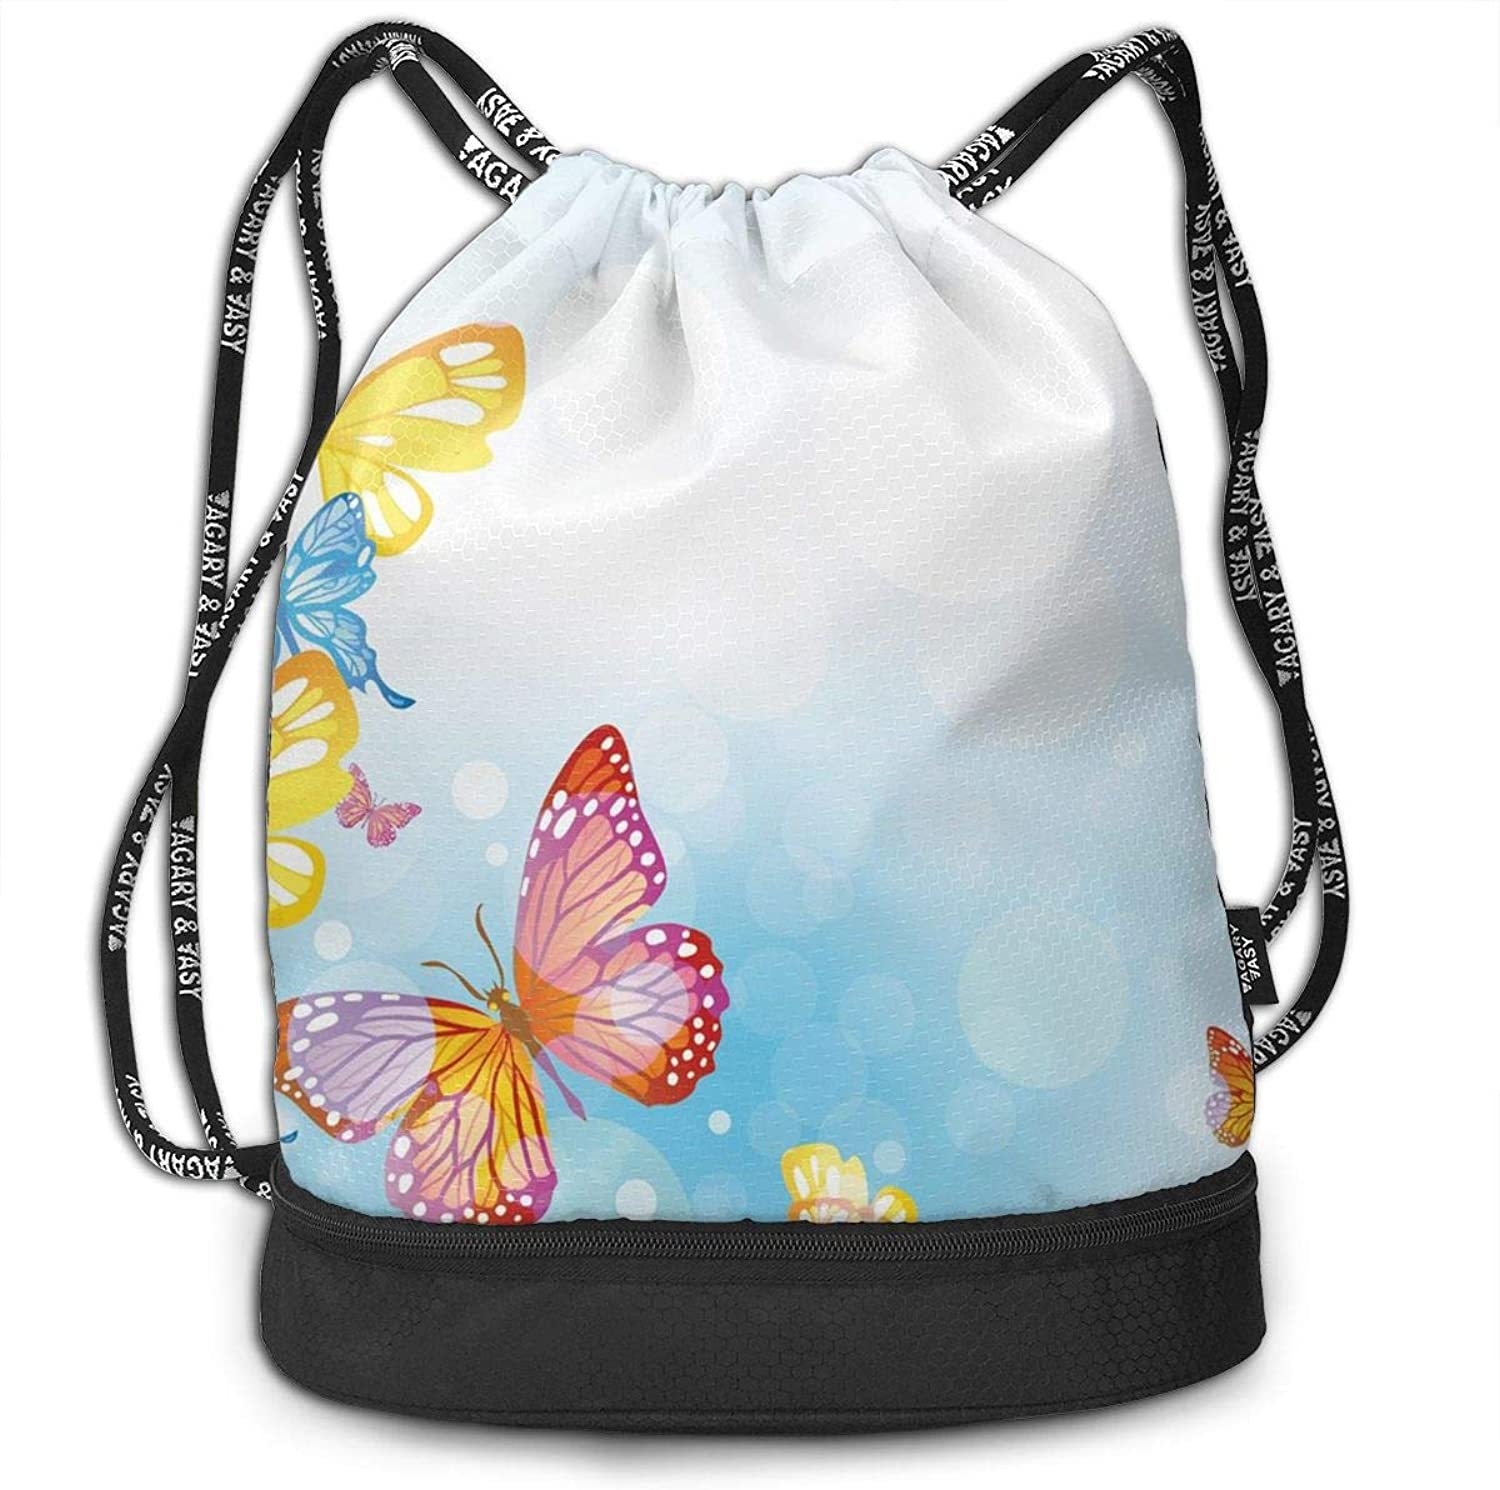 Gymsack Butterfly bluee Sky Print Drawstring Bags  Simple Bundle Pocket Backpack